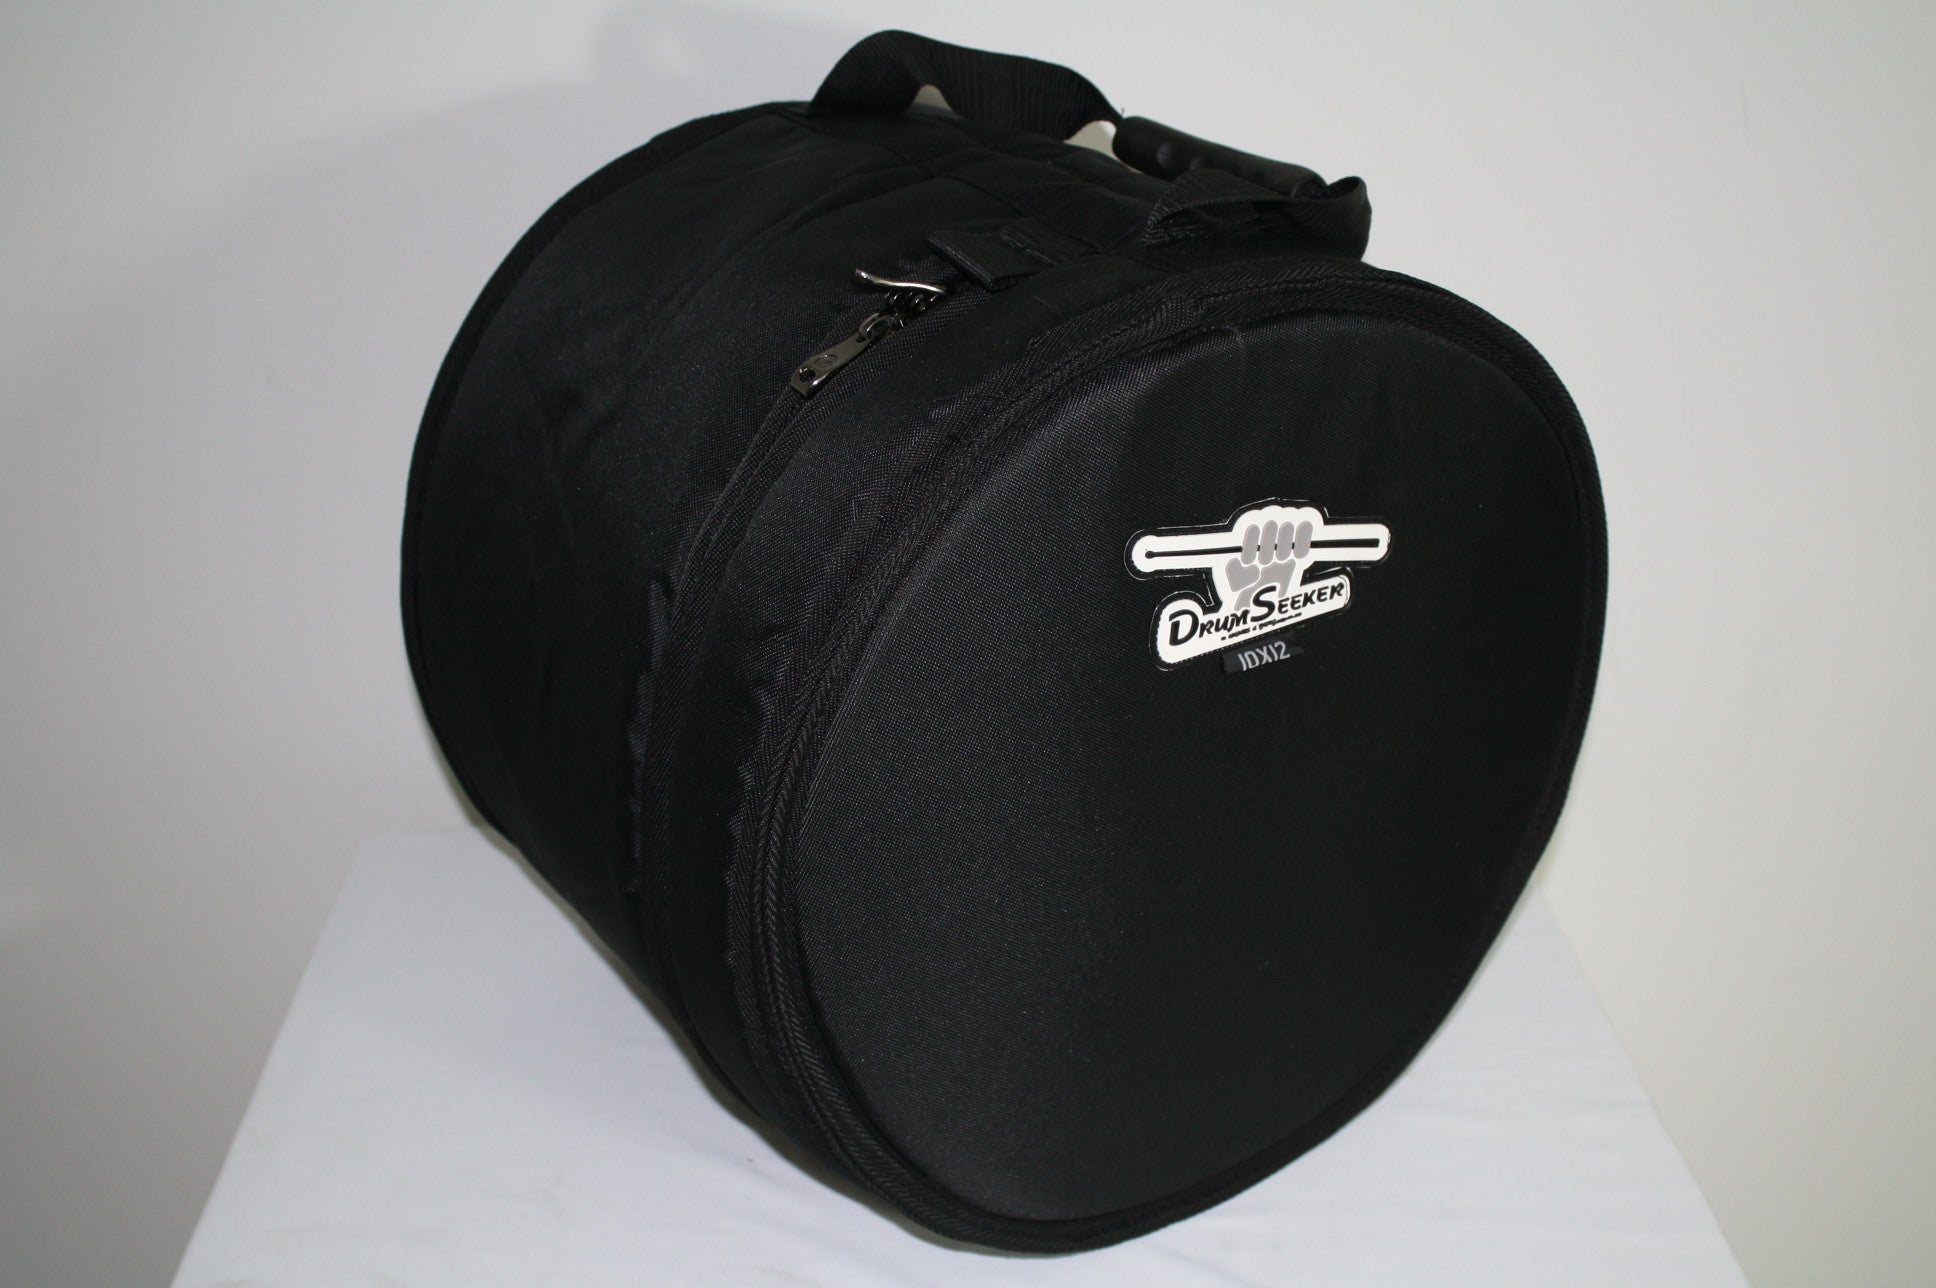 H&B  Drum Seeker 14 x 16 Inches Floor Tom Drum Bag